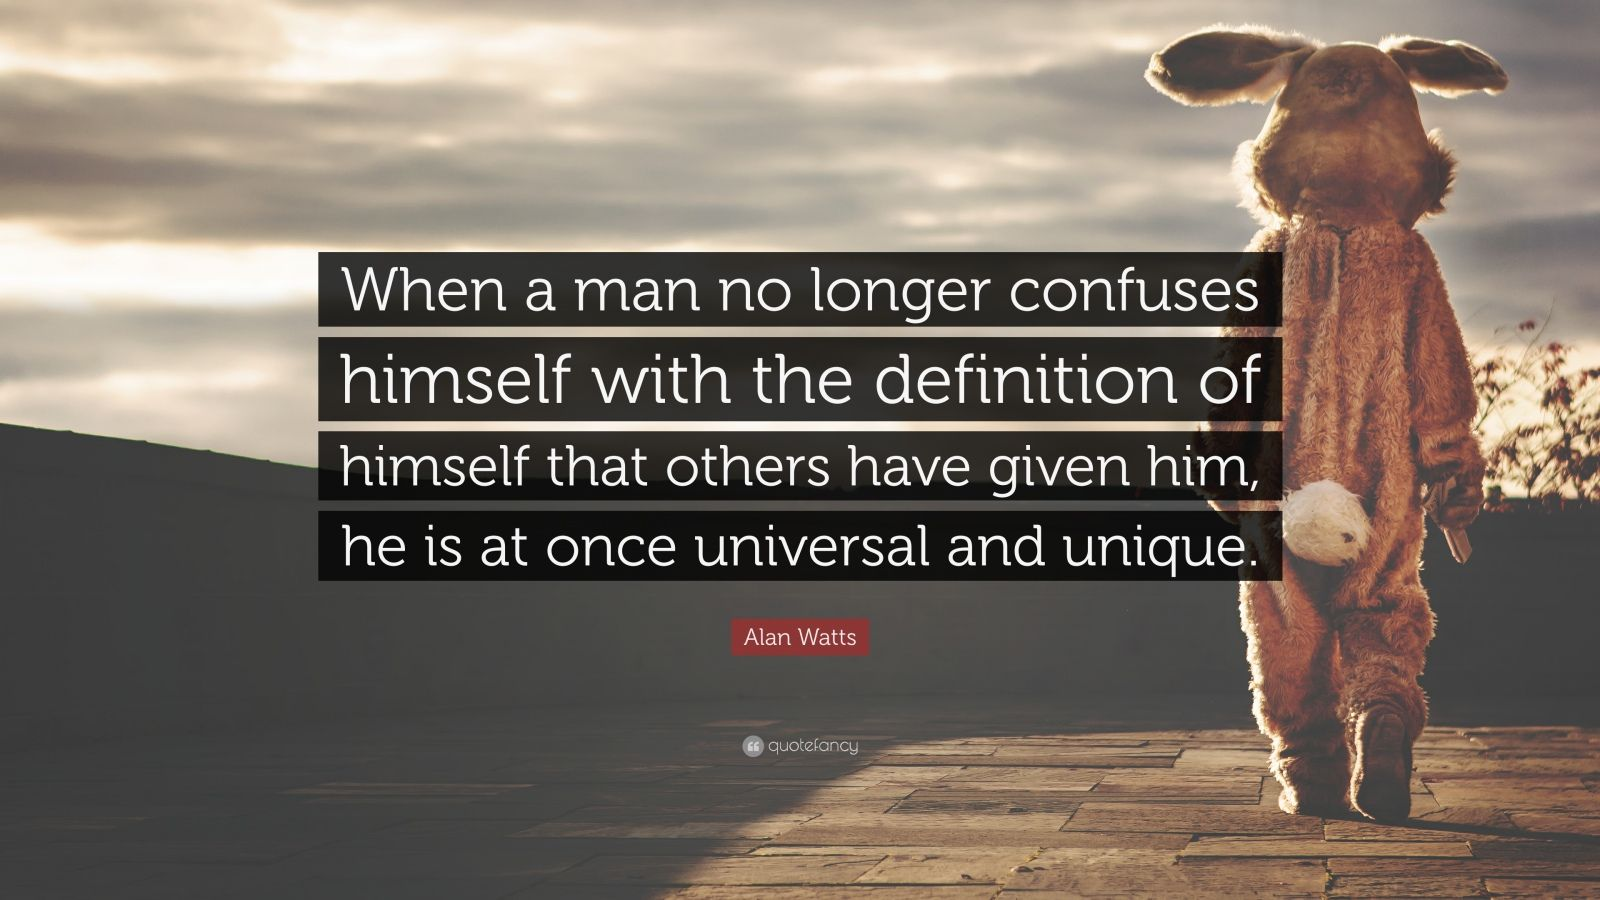 Strong Relationship Quotes Wallpapers Alan Watts Quote When A Man No Longer Confuses Himself